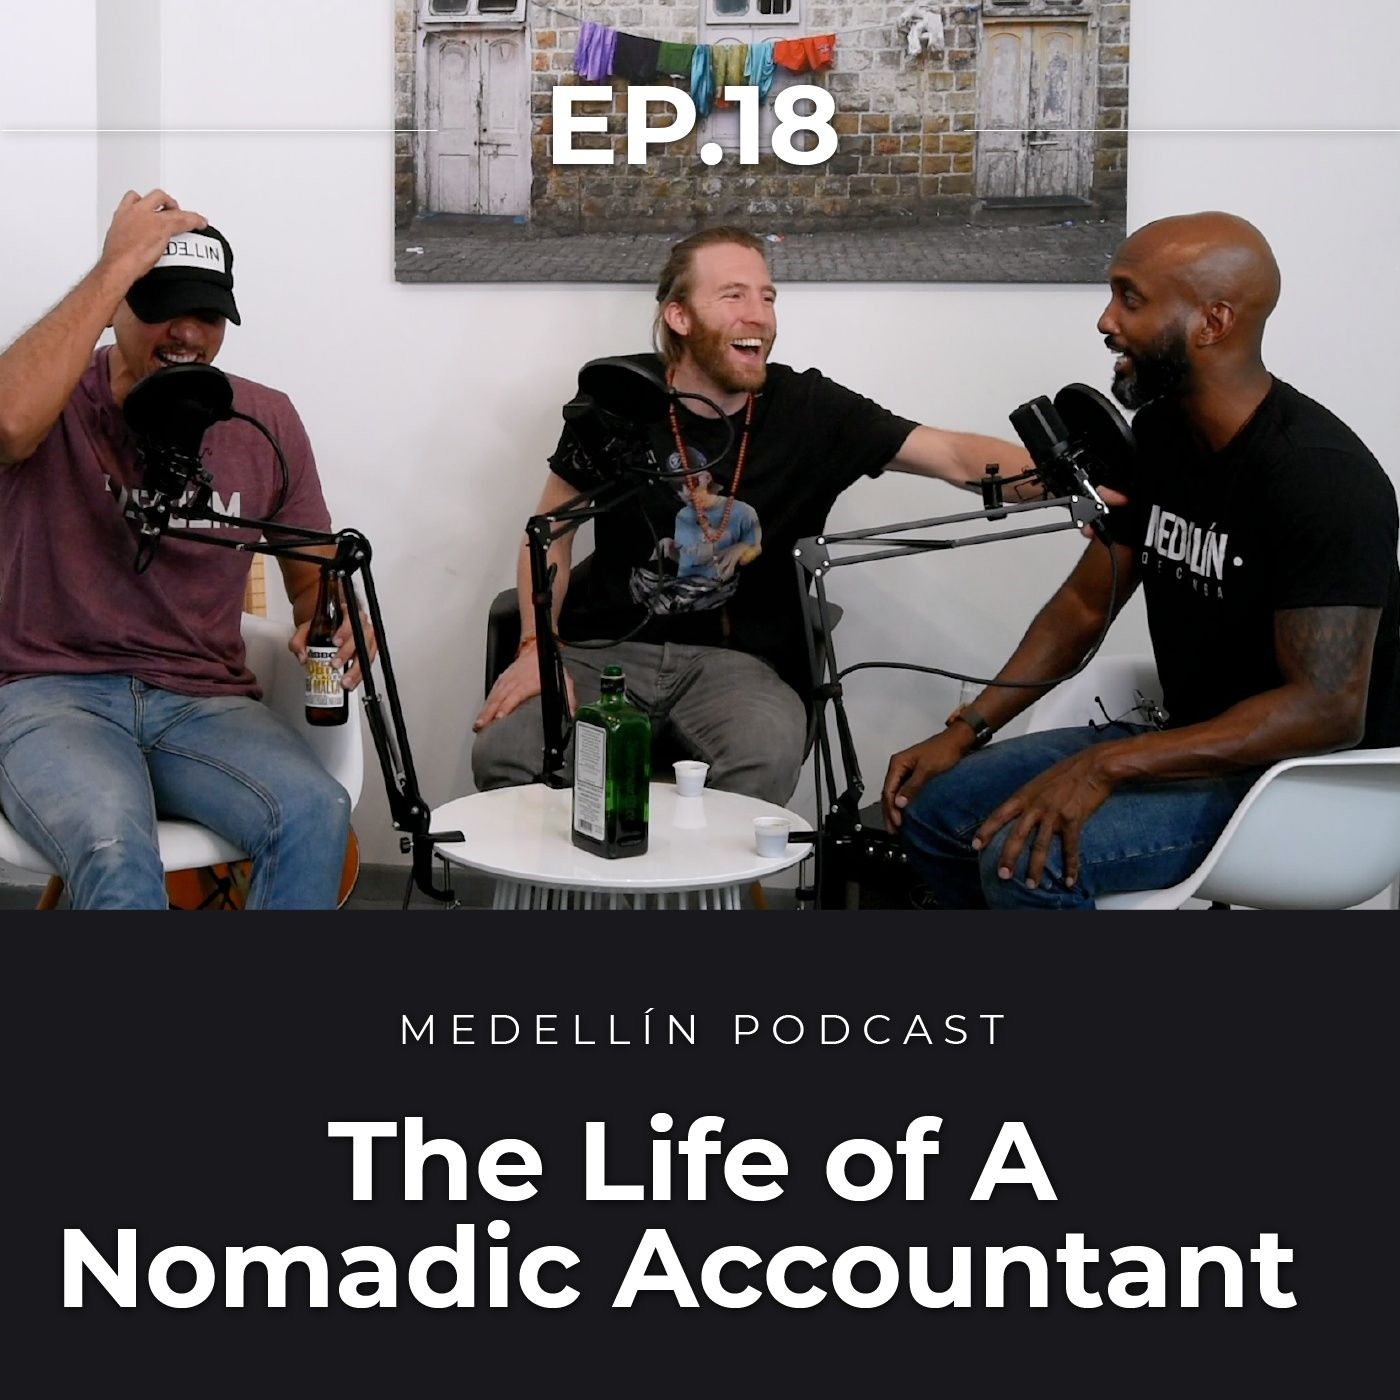 The Life of A Nomadic Accountant - Medellin Podcast Ep. 18